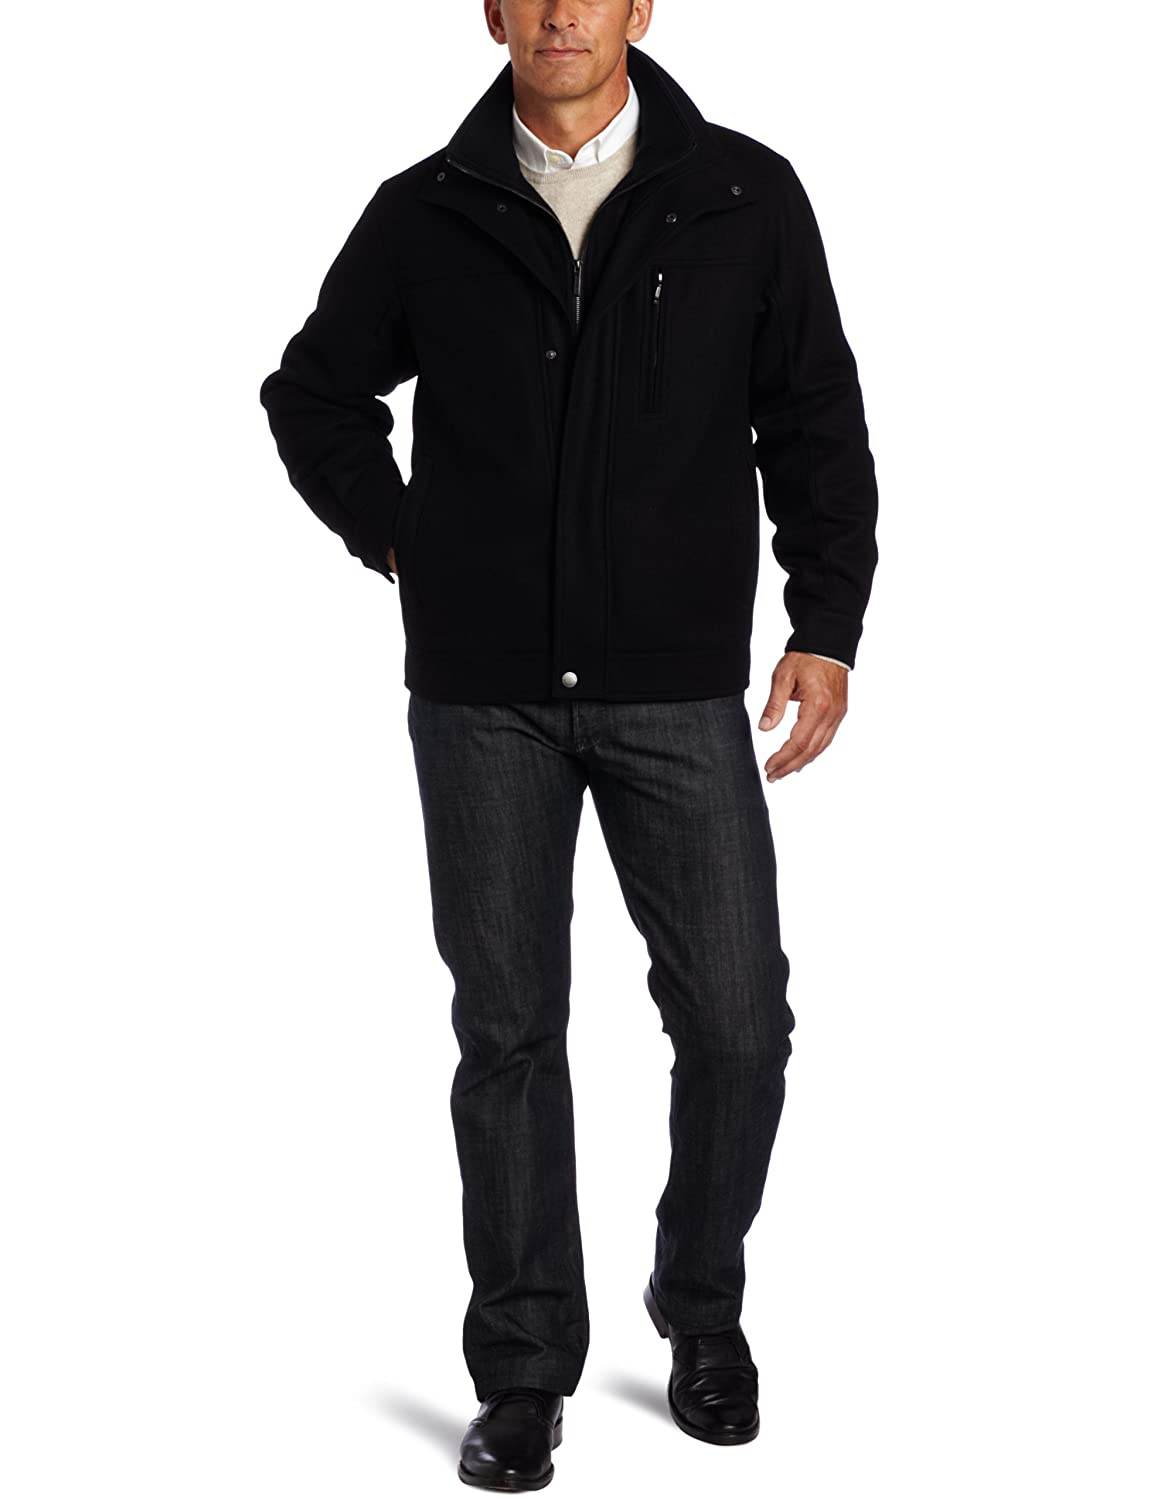 London Fog Men&#8217;s Antrim Wool Hipster, Black, XX-Large 	$59.98